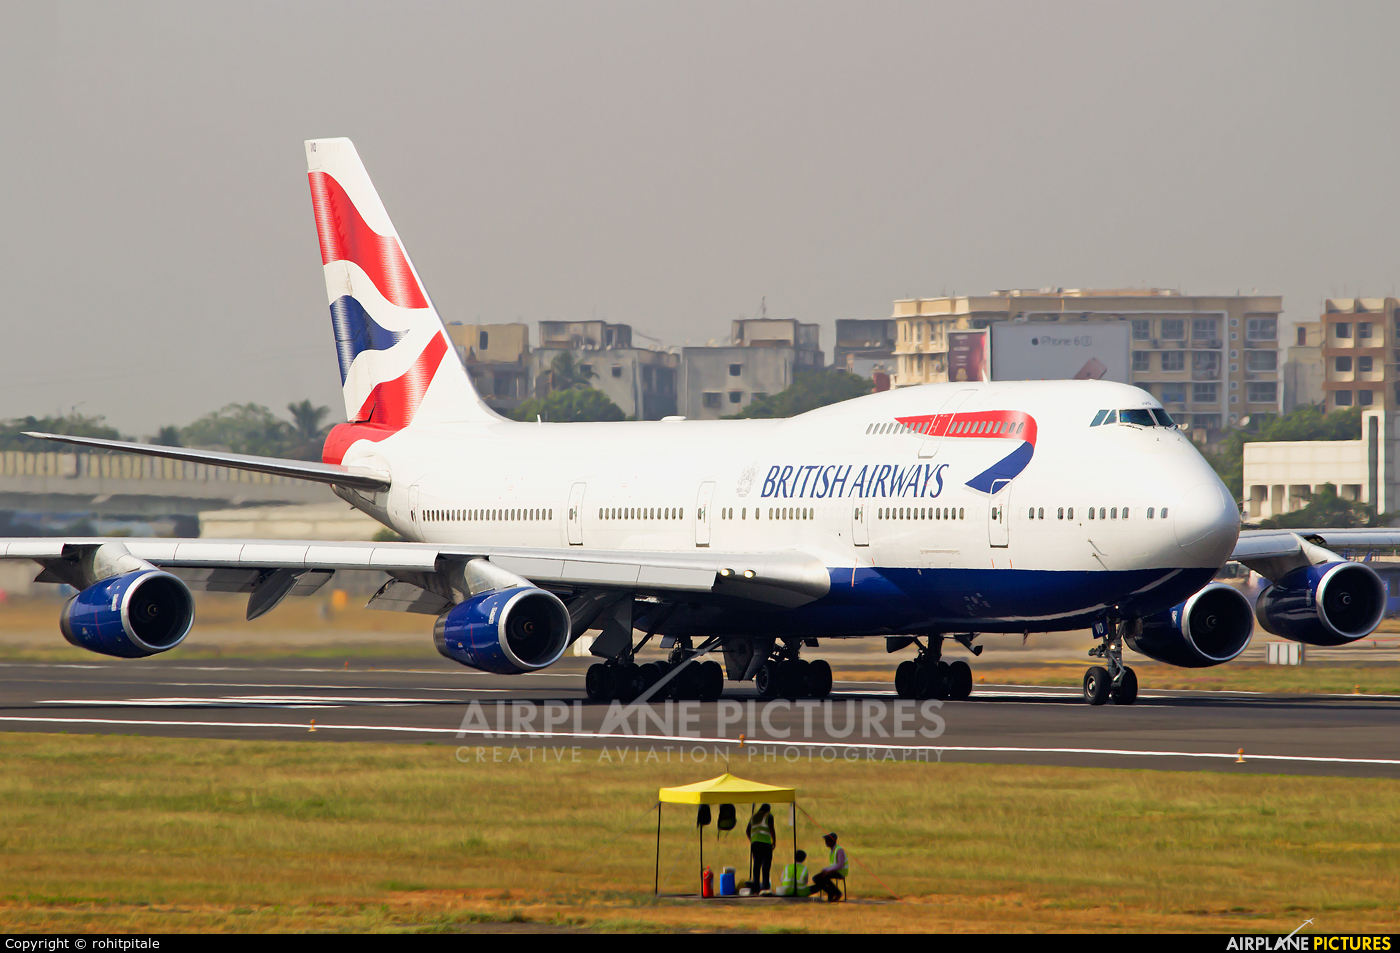 British Airways G-CIVO aircraft at Mumbai - Chhatrapati Shivaji Intl